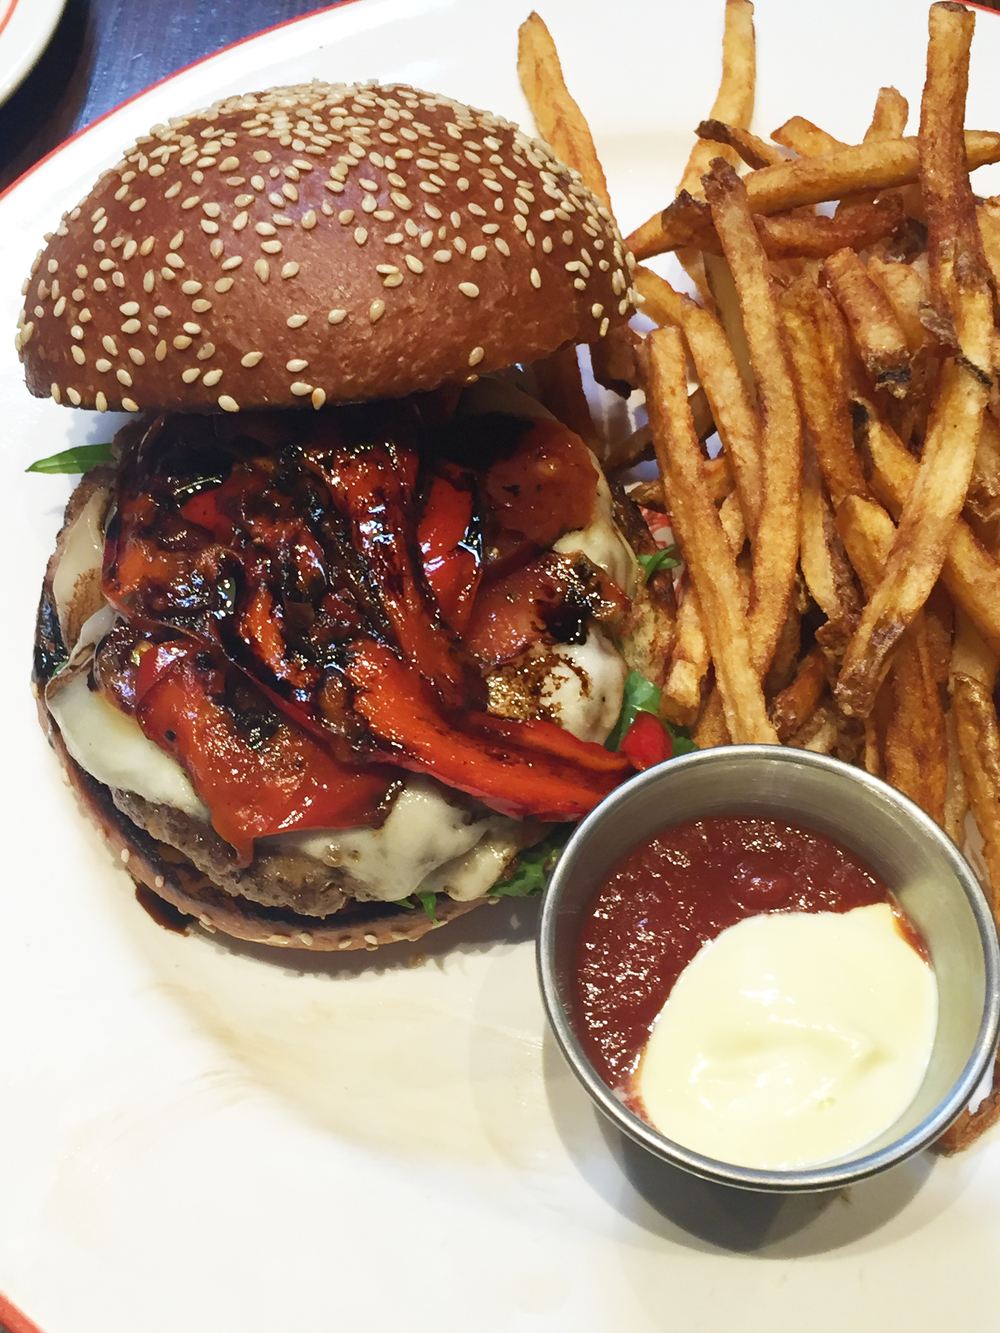 Pepperoni Burger with pork patty, Belcampo by Batali pepperoni, mozzarella, aioli, roasted red bell peppers and balsamic reduction on Bread Bar Brioche & fries.